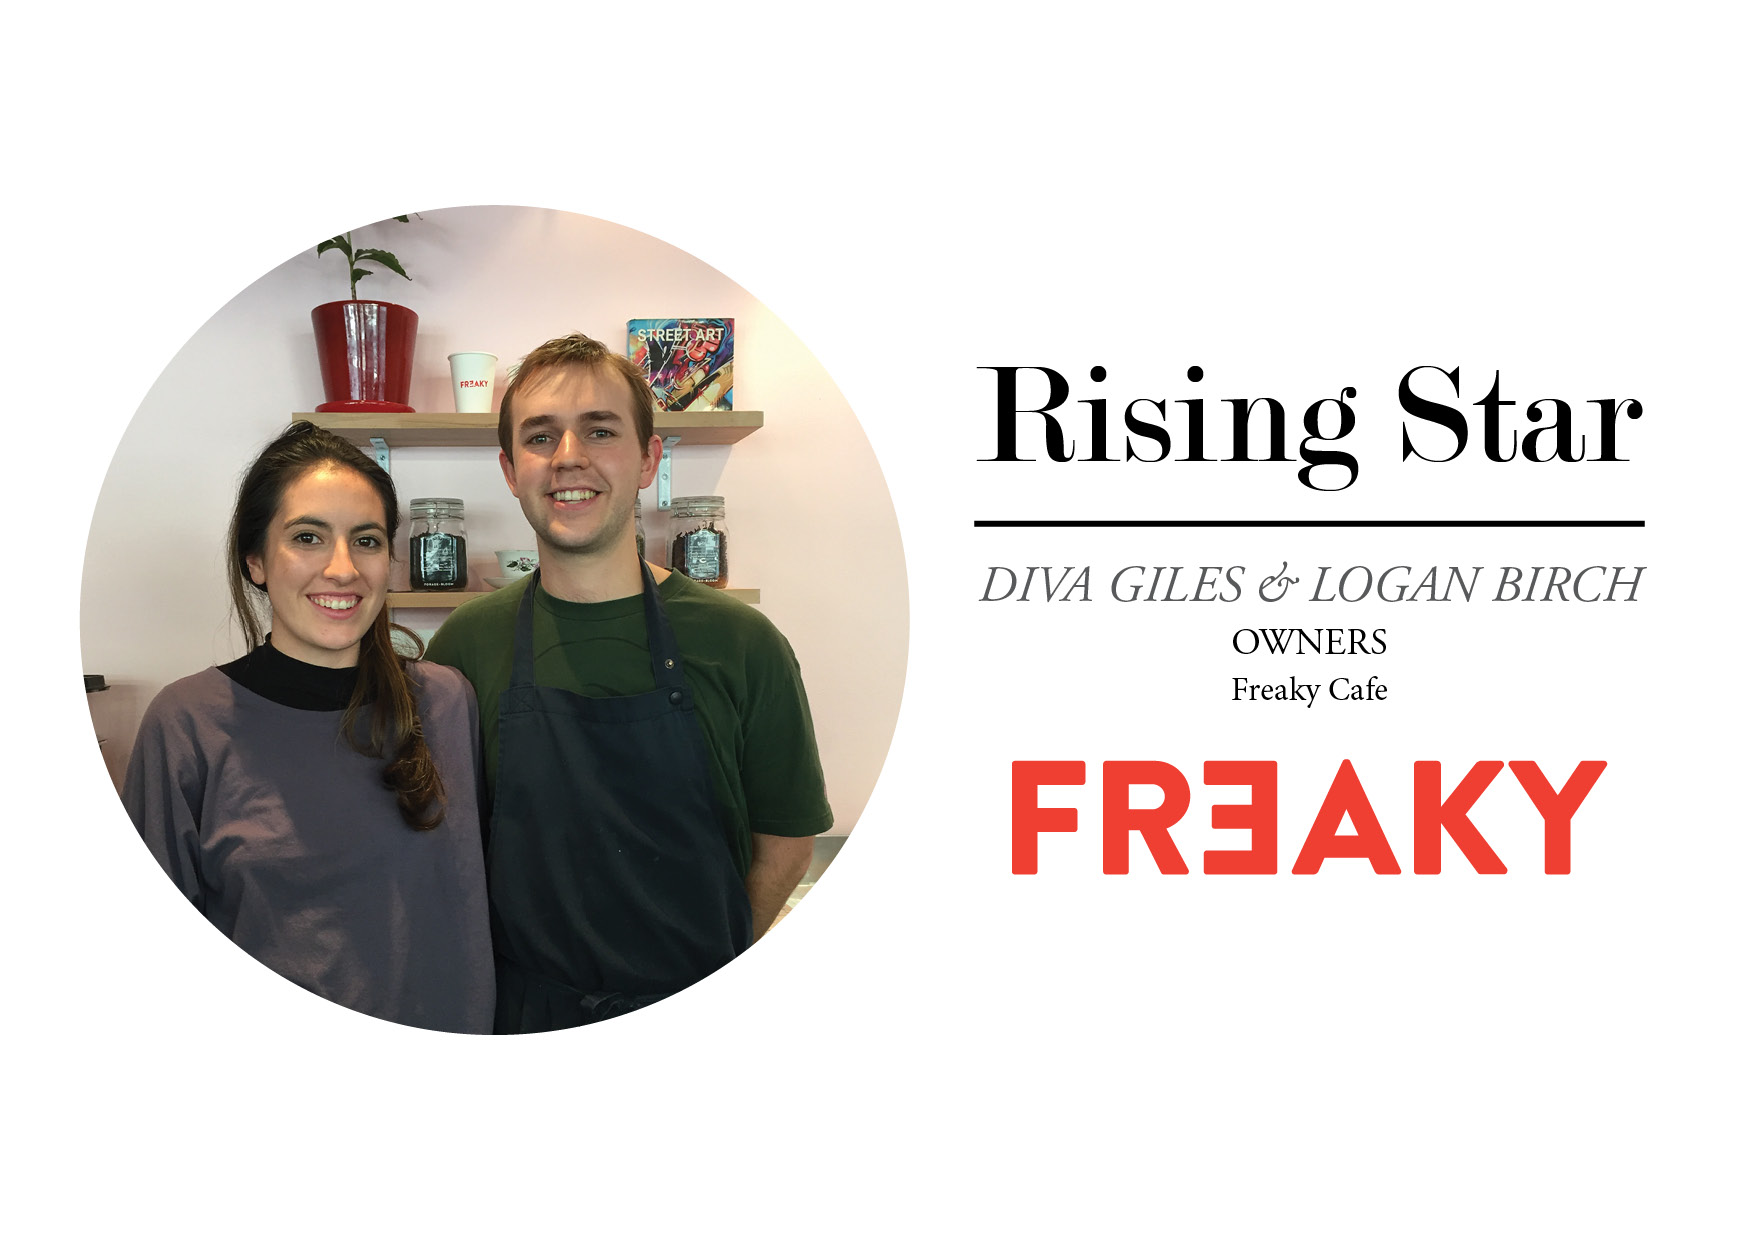 Diva Giles and Logan Birch stand in their cafe, Freaky